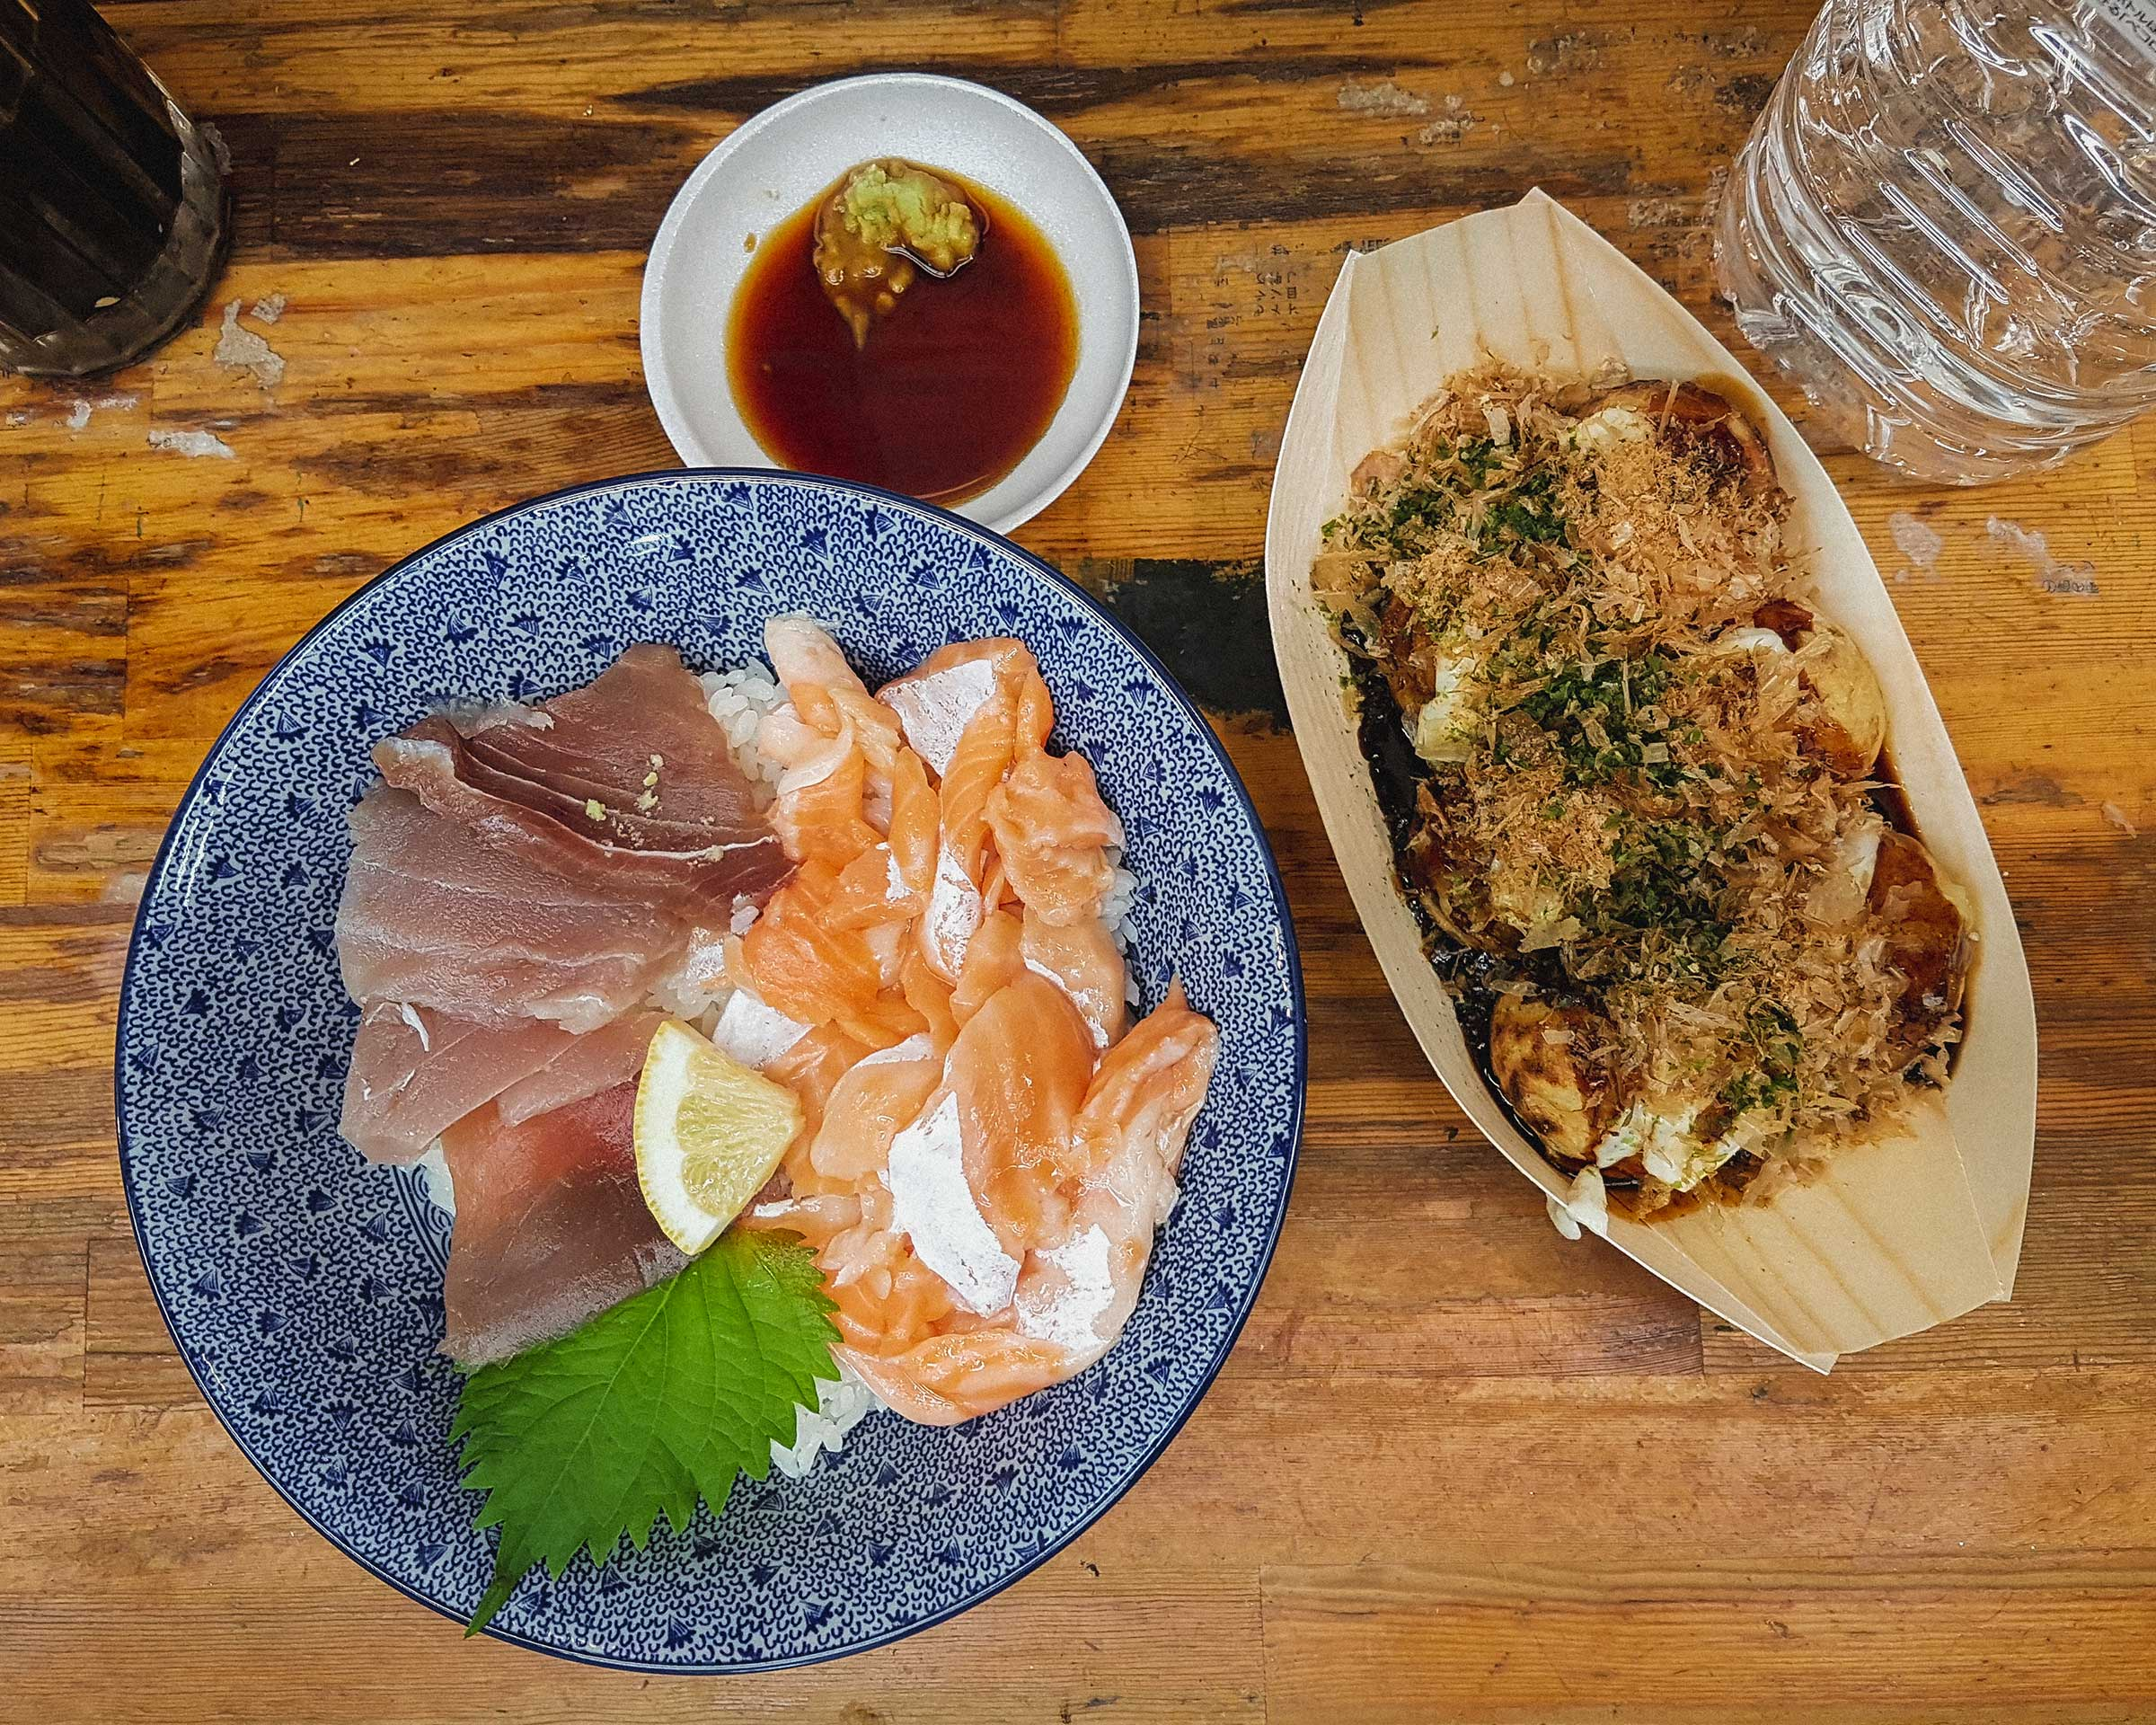 Tuna and Salmon Donburi 500 yen ($4.65) + Takoyaki 300 yen ($2.79)